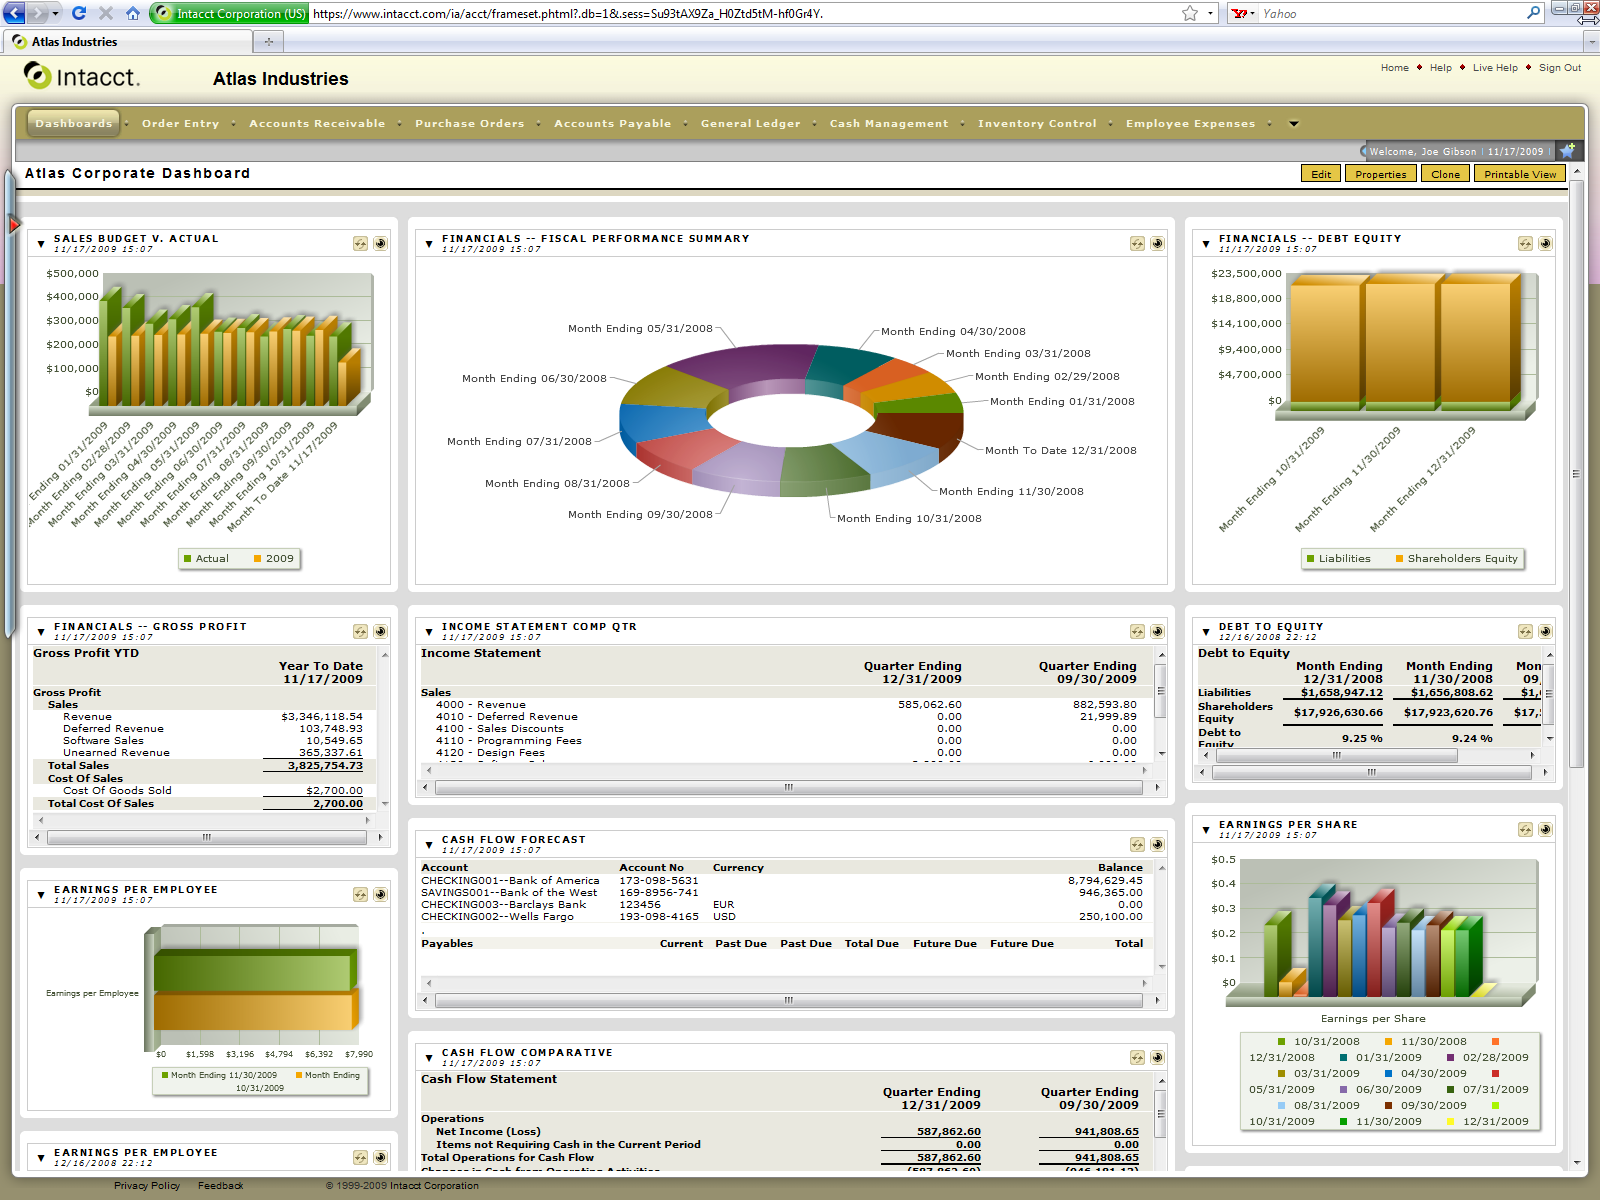 Product Brief Intacct Financials & Accounting Intacct Financials and Accounting includes Intacct General Ledger, Intacct Accounts Receivable, Intacct Accounts Payable, Intacct Cash Management and